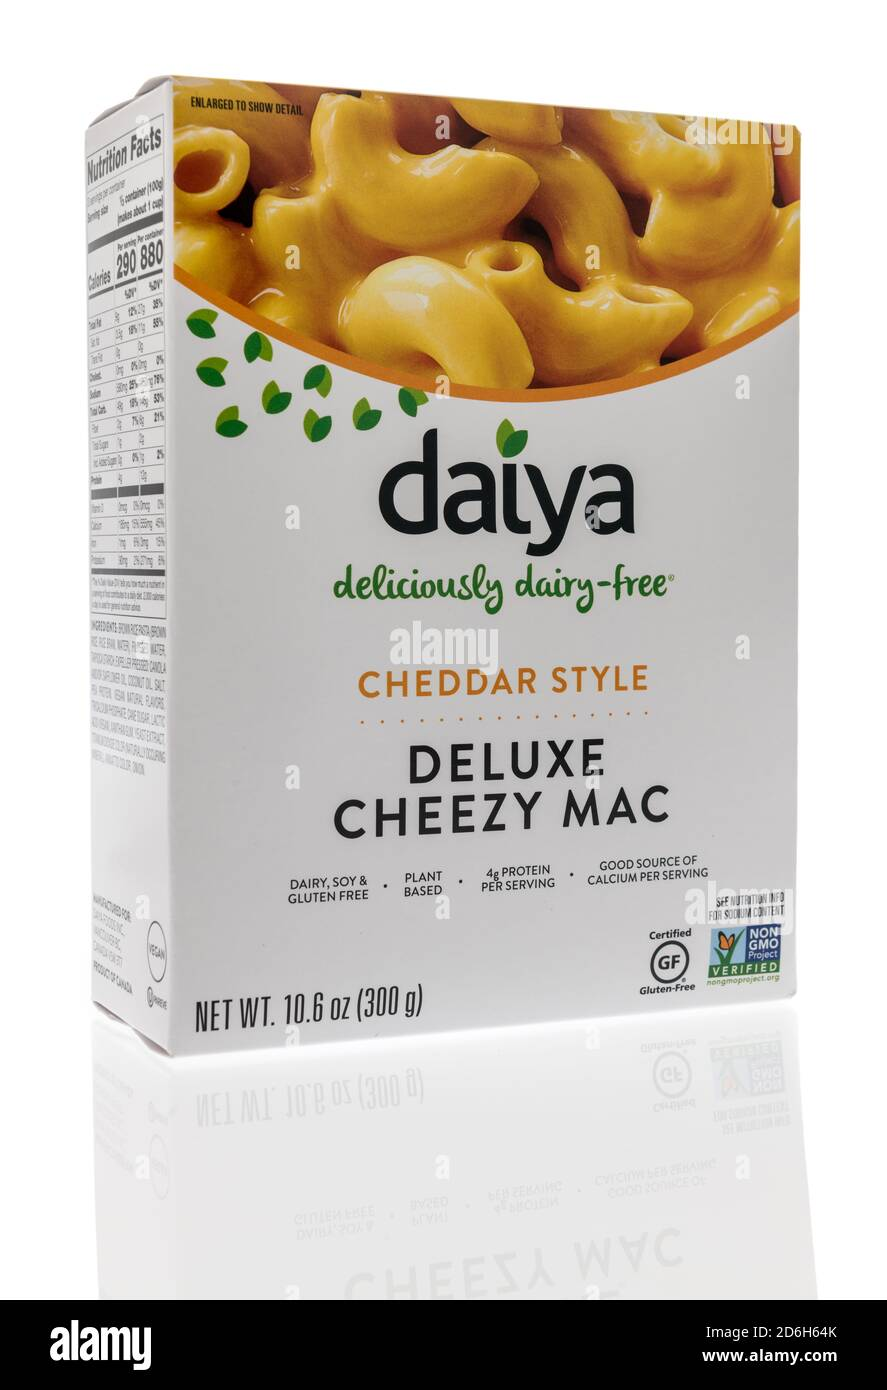 Winneconne, WI - 16 October 2020:  A package of Daiya macaroni and cheese on an isolated background. Stock Photo